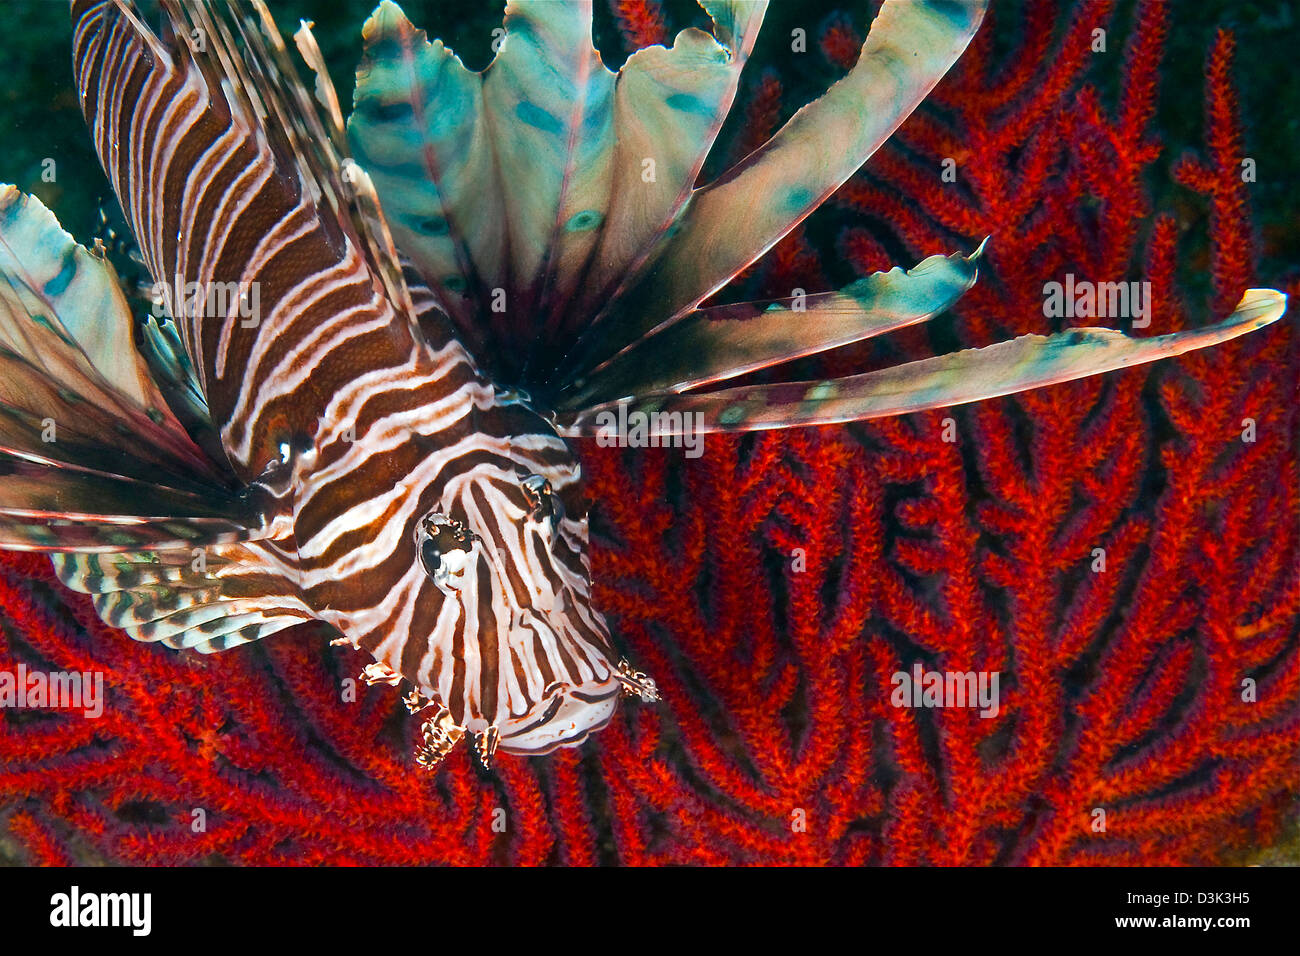 An Invasive Indo-Pacific Lionfish off the coast of North Carolina in the Atlantic Ocean. - Stock Image